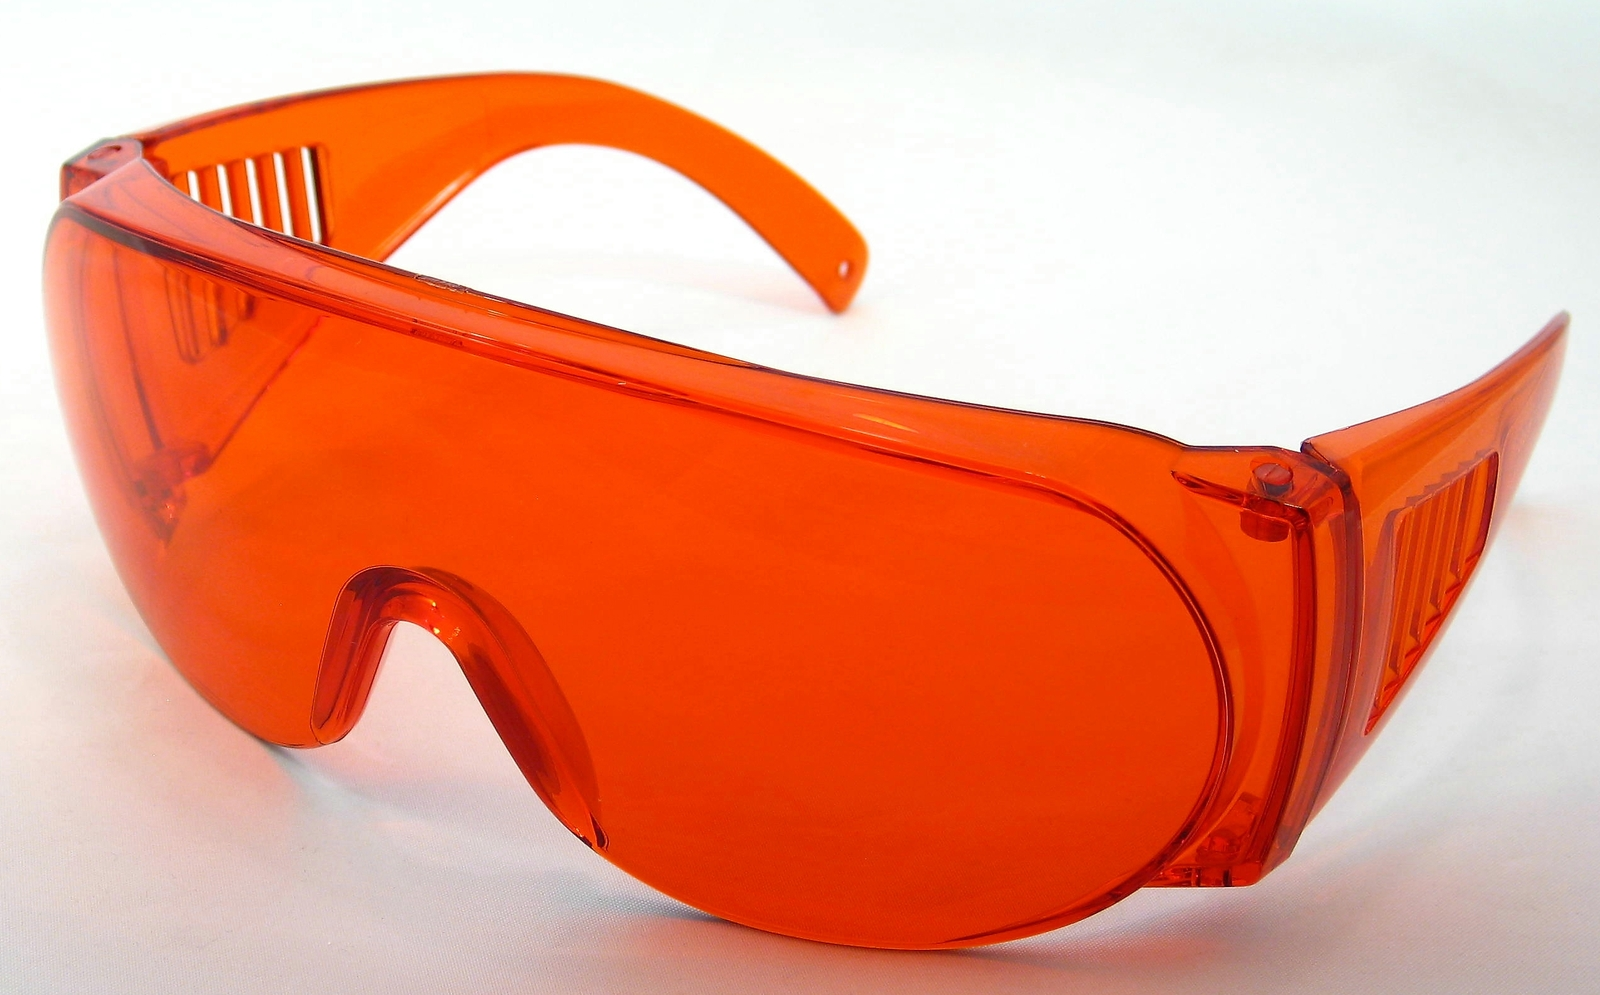 Primary image for Set of 5 High Quality, High Comfort, U.V. Protective Safety Glasses